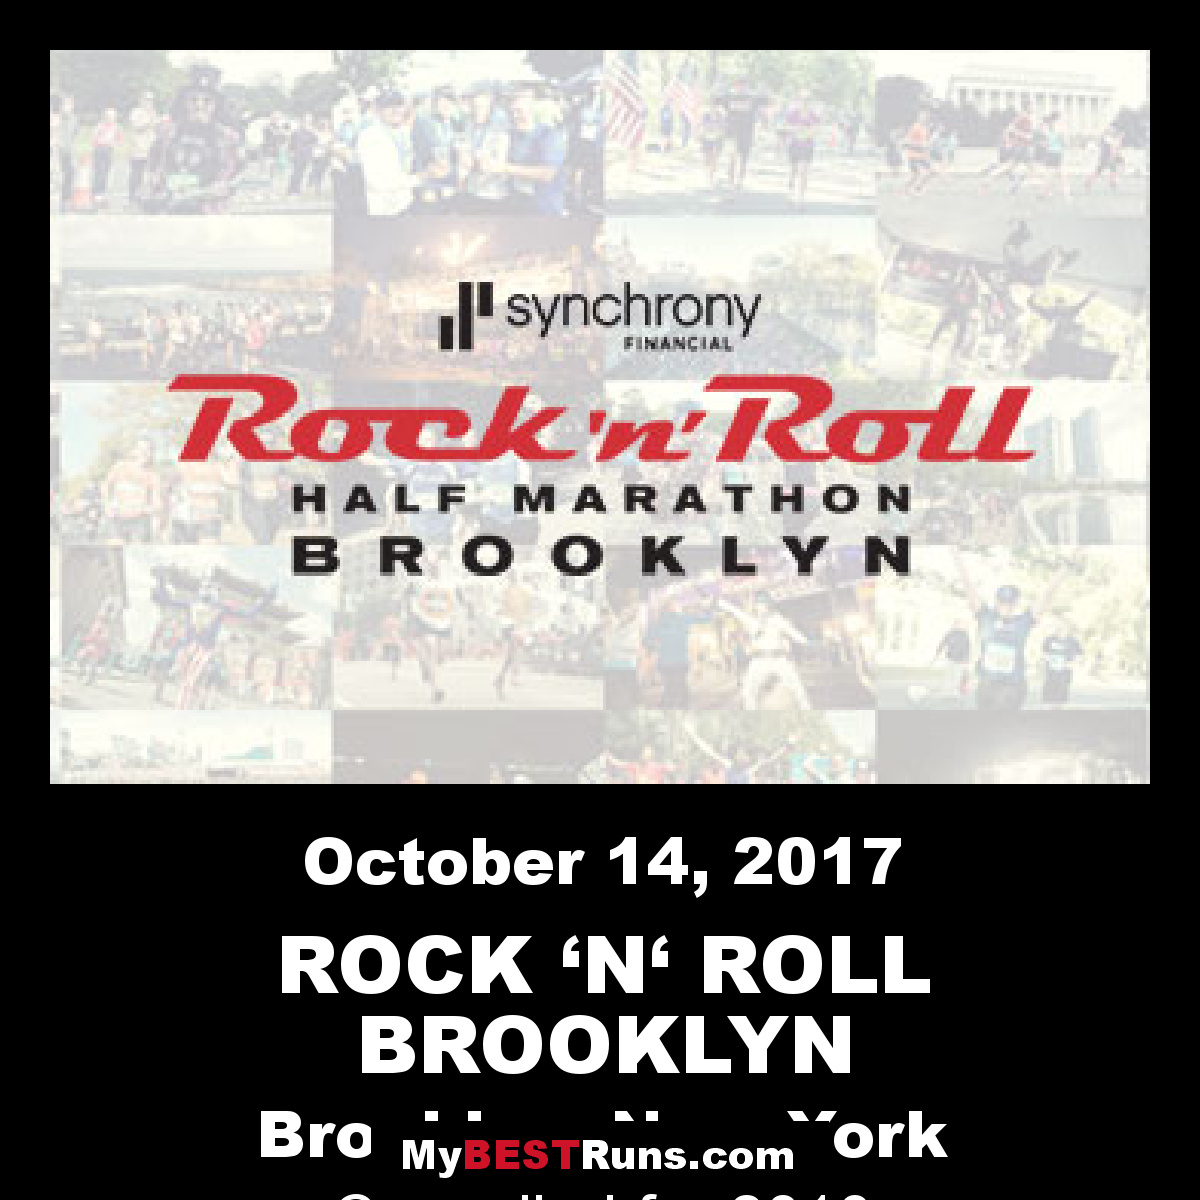 ROCK 'N' ROLL BROOKLYN